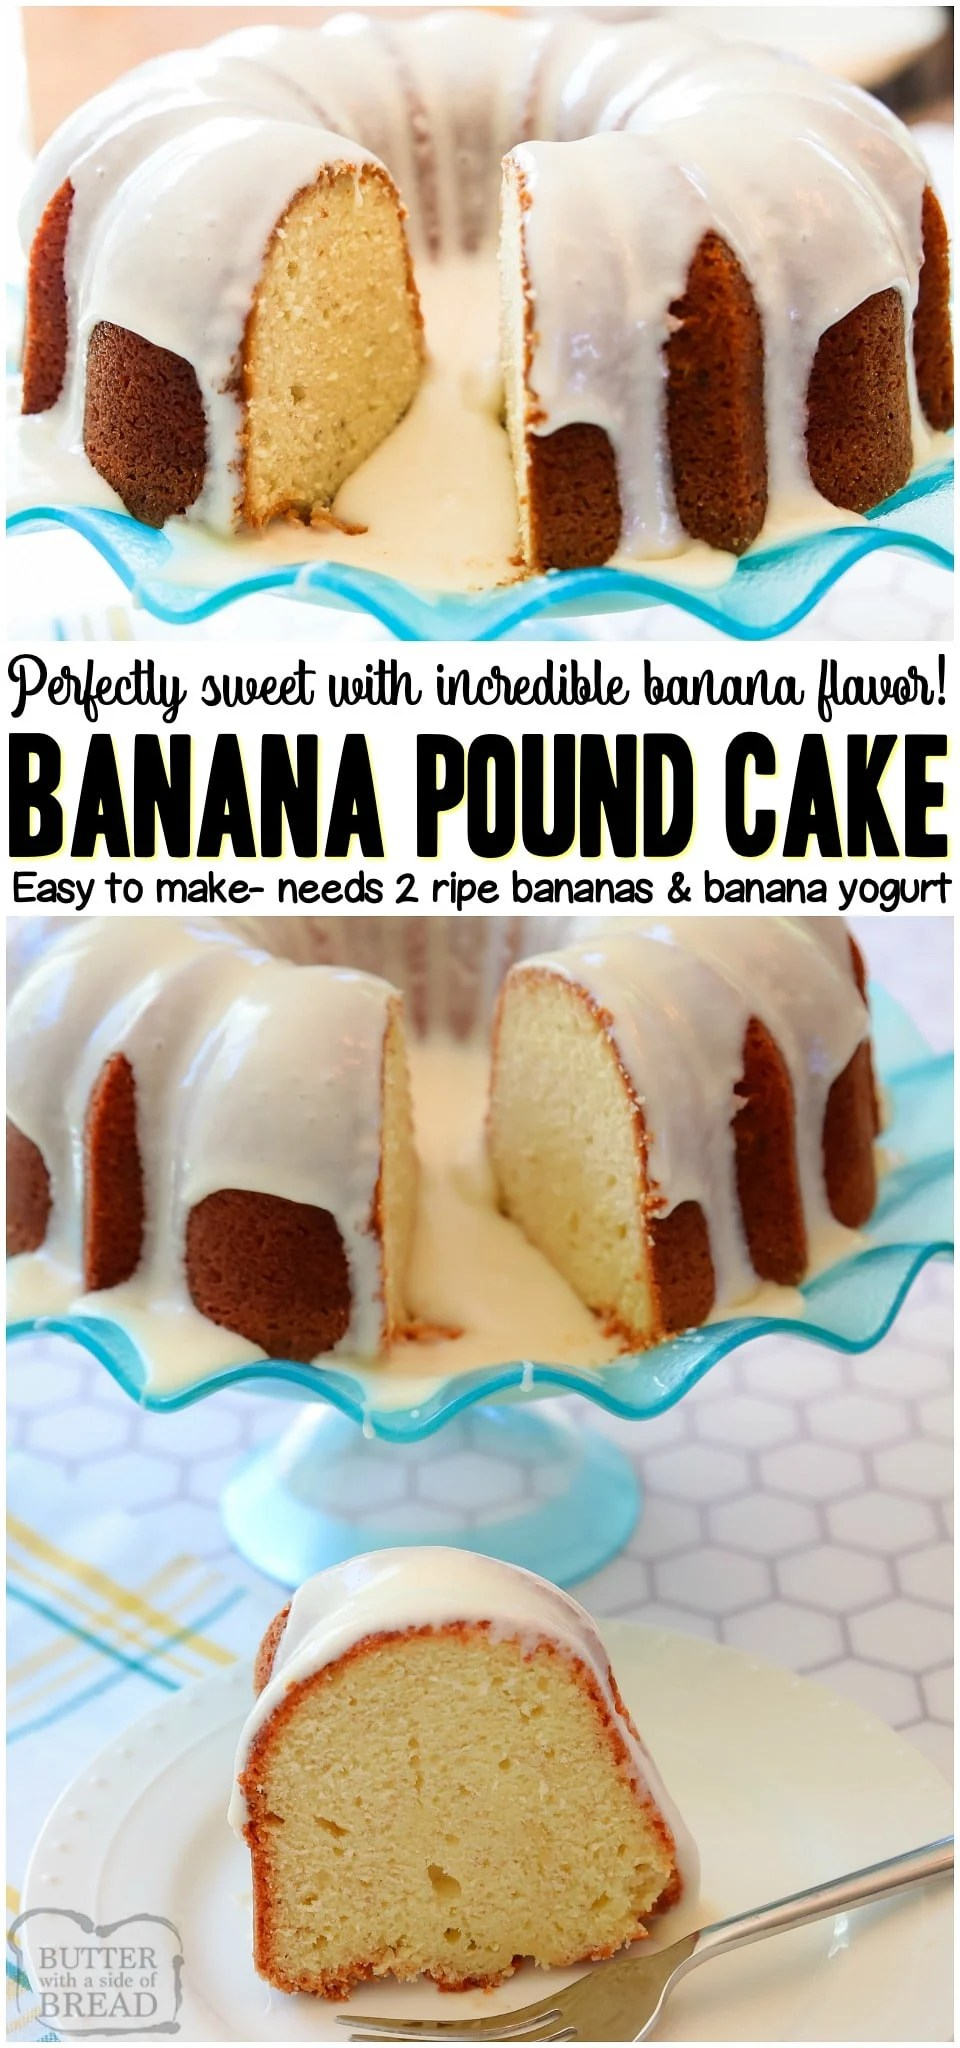 Banana Pound Cake recipe with the most incredible banana flavors ever! Sweet pound cake made with ripe bananas and banana yogurt and topped with a vanilla glaze. #cake #banana #poundcake #butter #baking #dessert #recipe from BUTTER WITH A SIDE OF BREAD